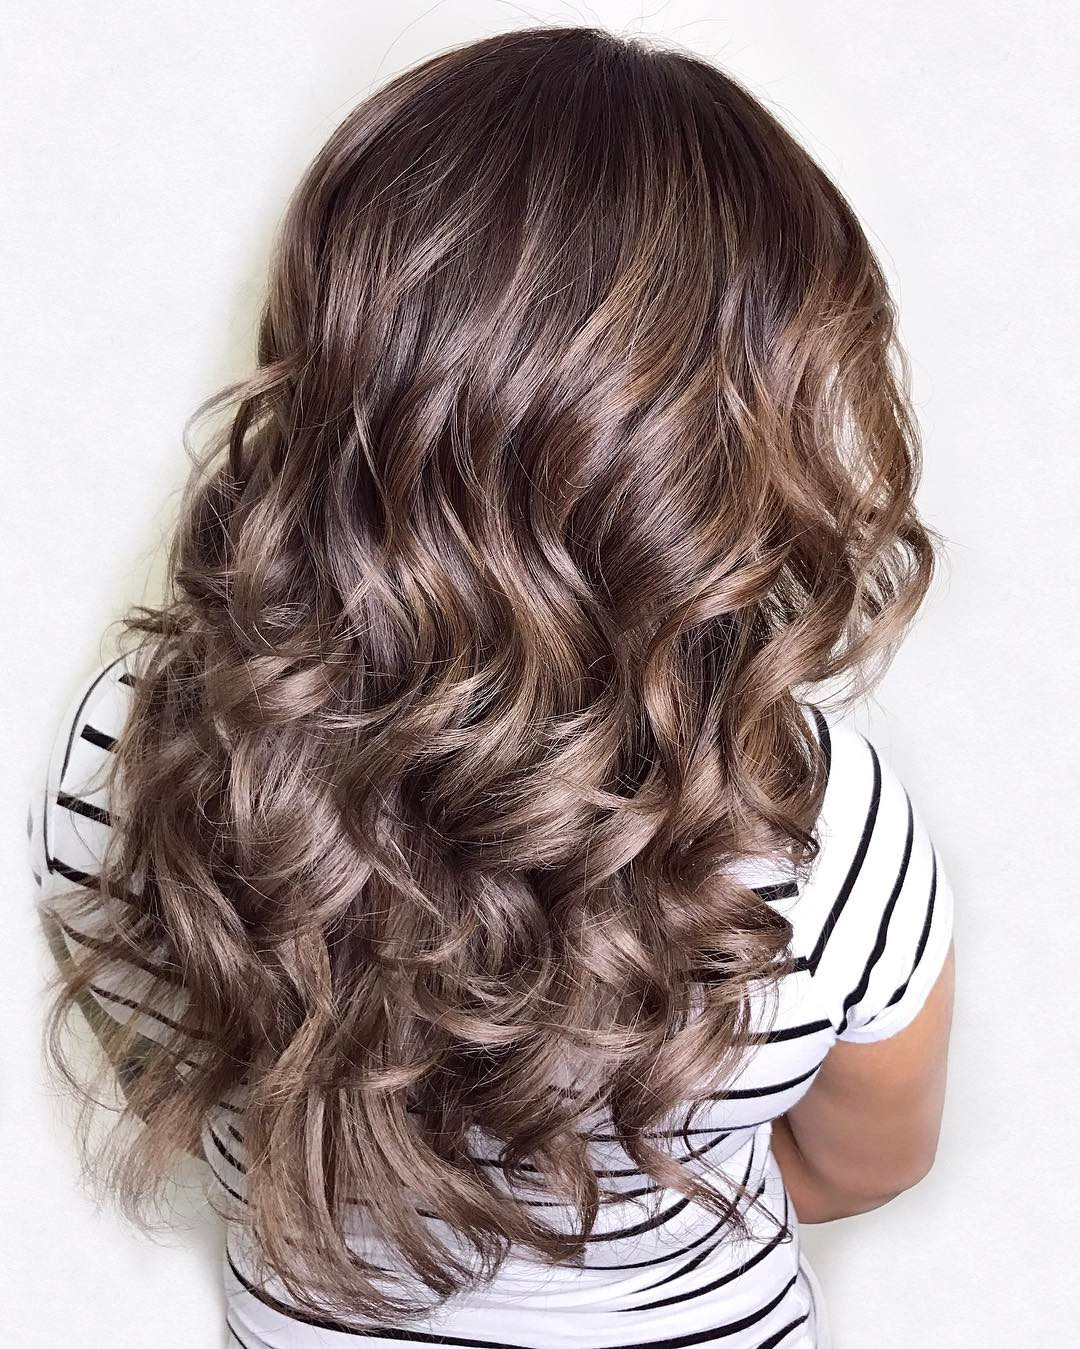 Layered Hairstyle for Long Curly Hair